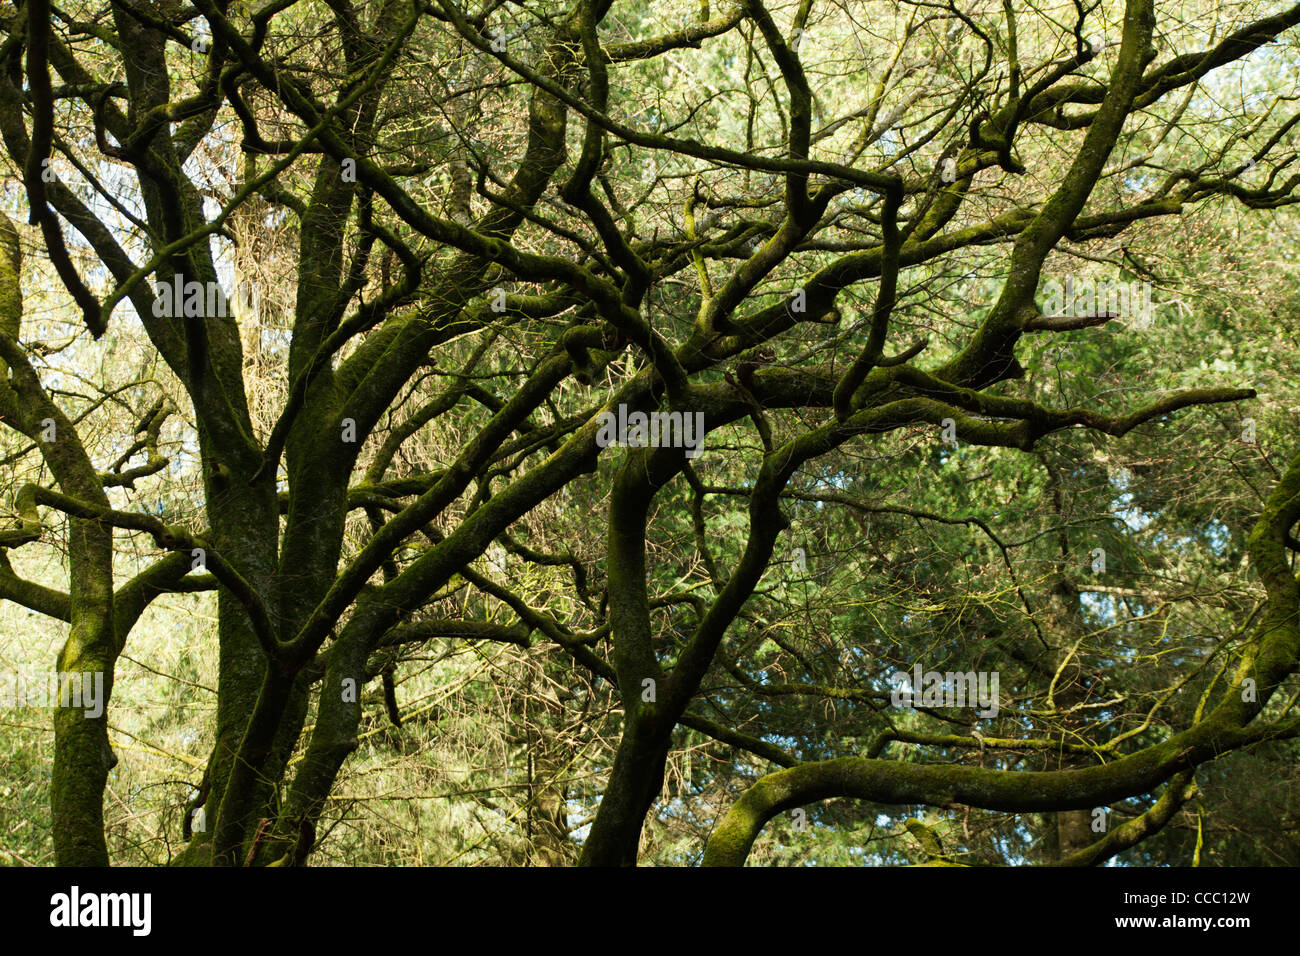 Tree branches covered in moss Stock Photo